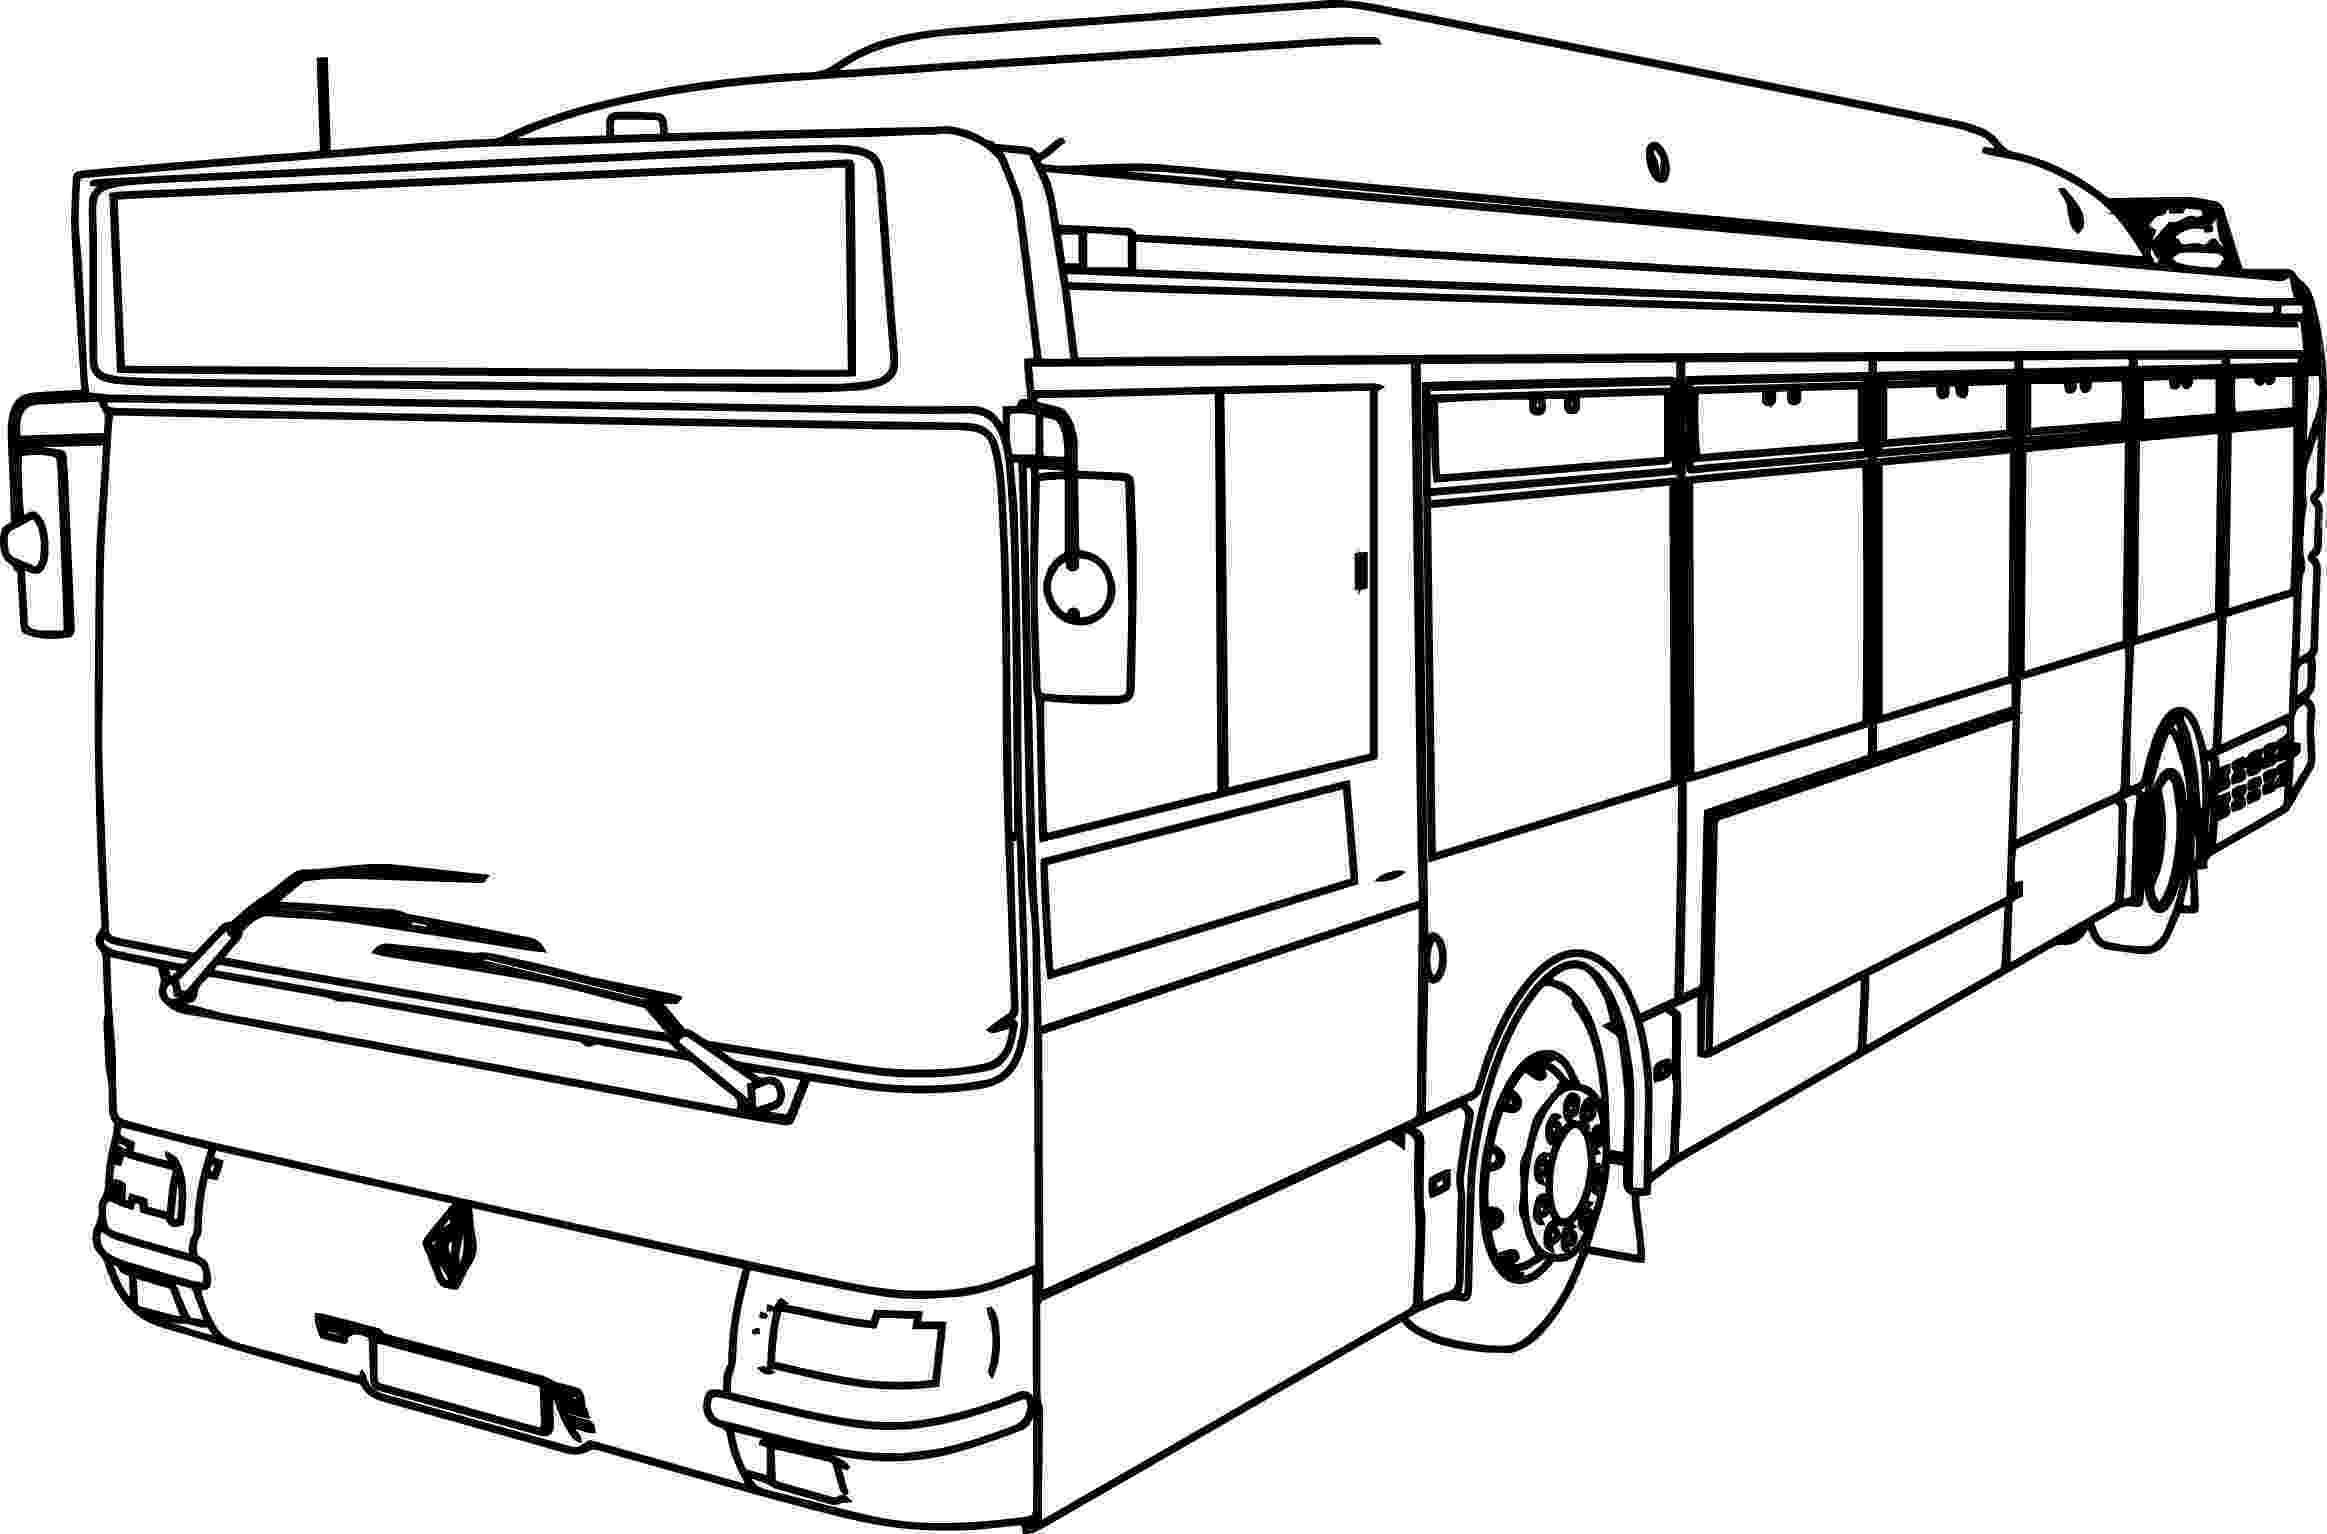 bus coloring pages bus line drawing at getdrawings free download pages bus coloring